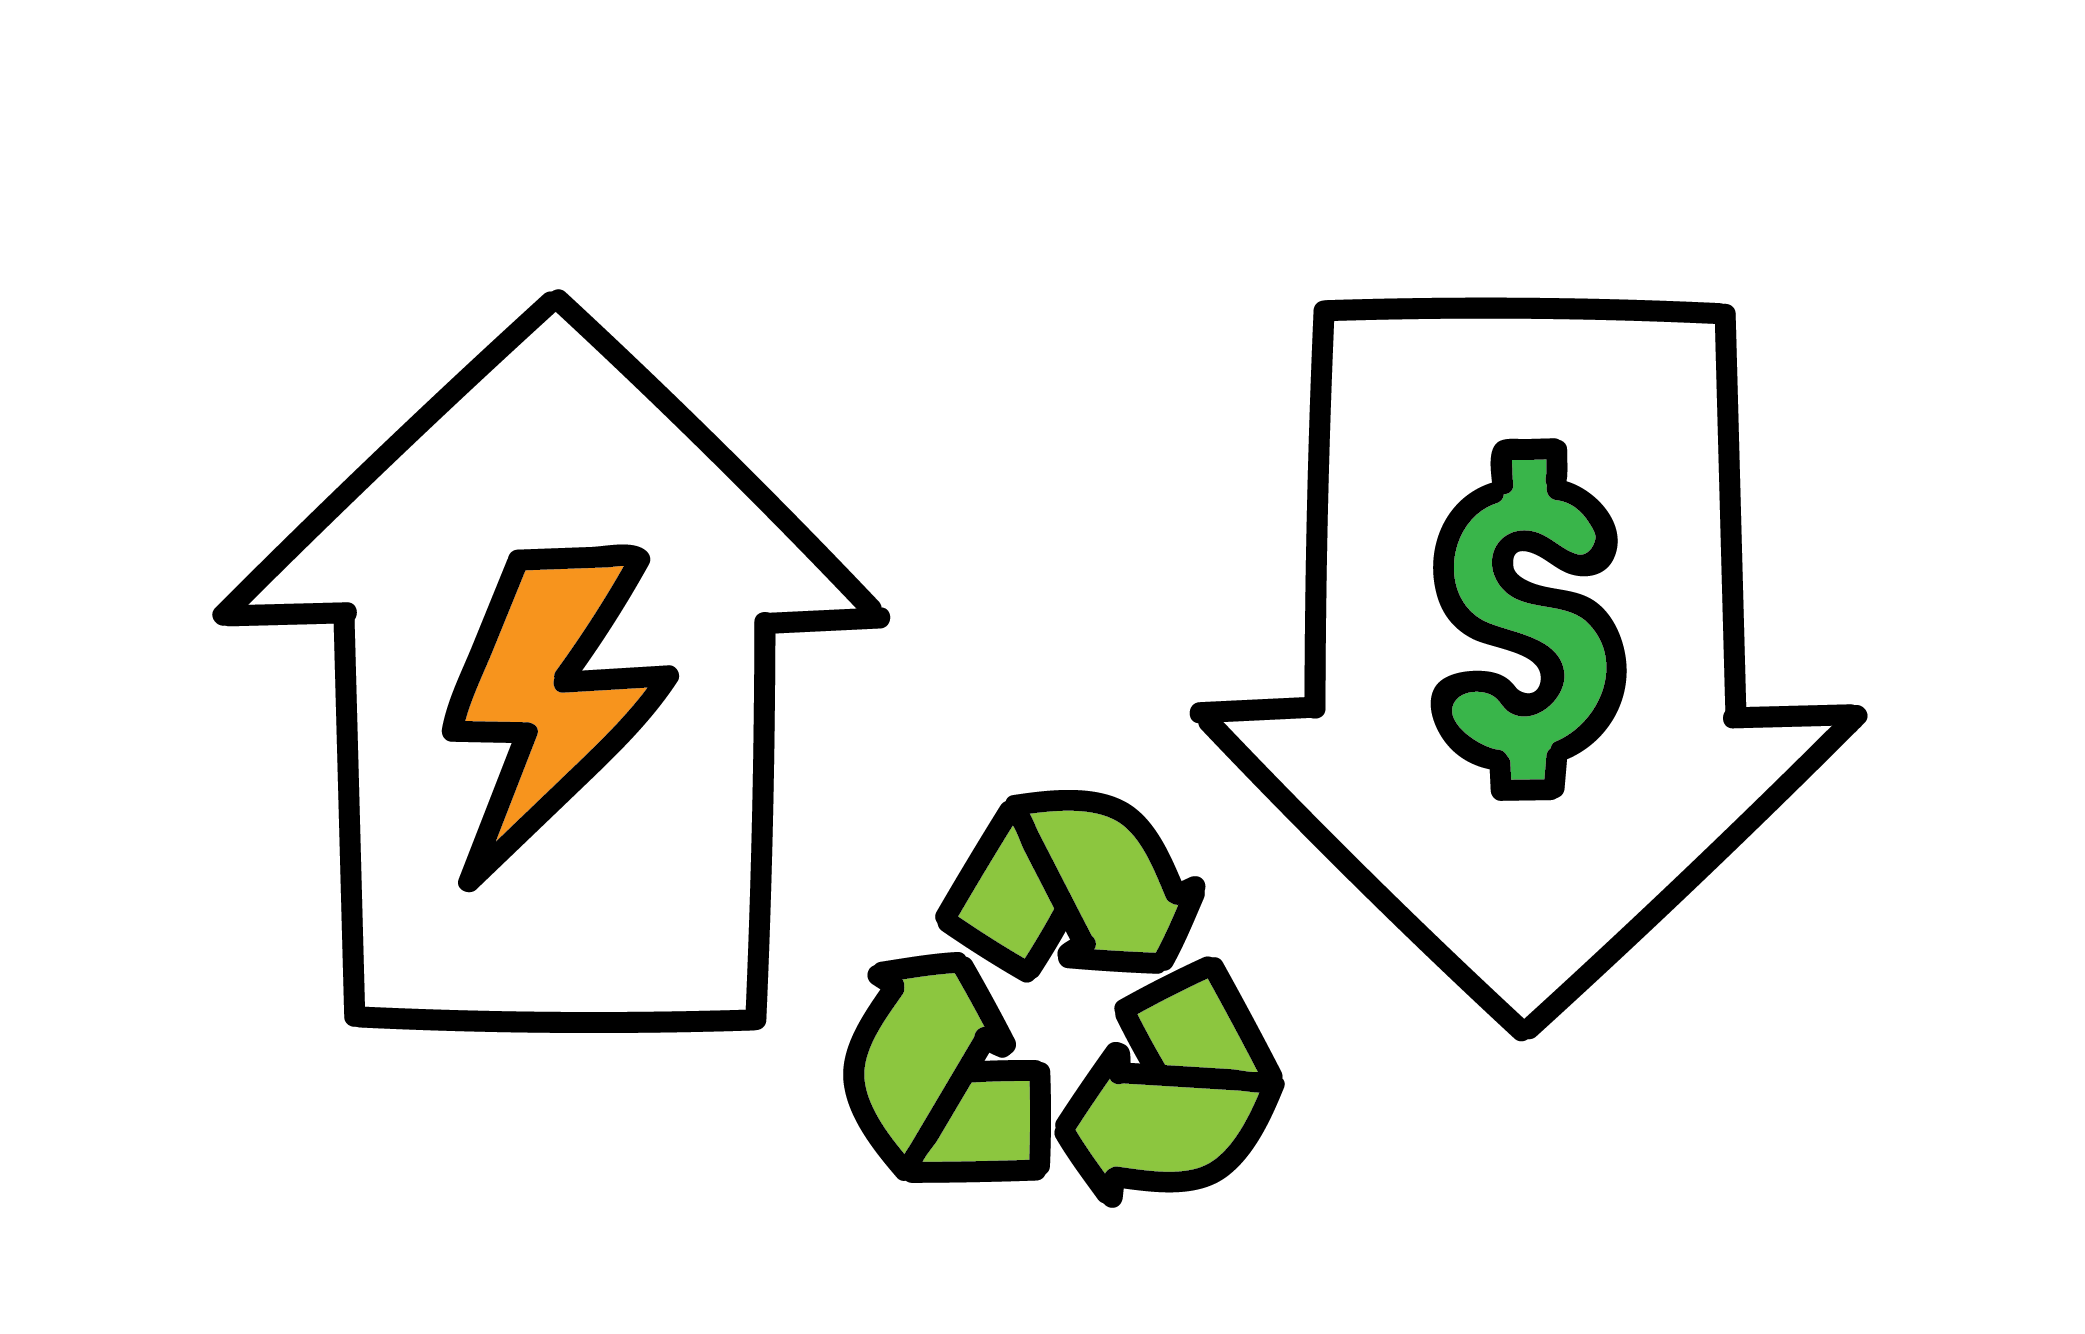 Just Makes Sense! - Minimal maintenance, Highest efficiency and Lowest installed costs make the SolarLEAF the most bankable and sustainable way to integrate energy storage with Solar PV energy systems.